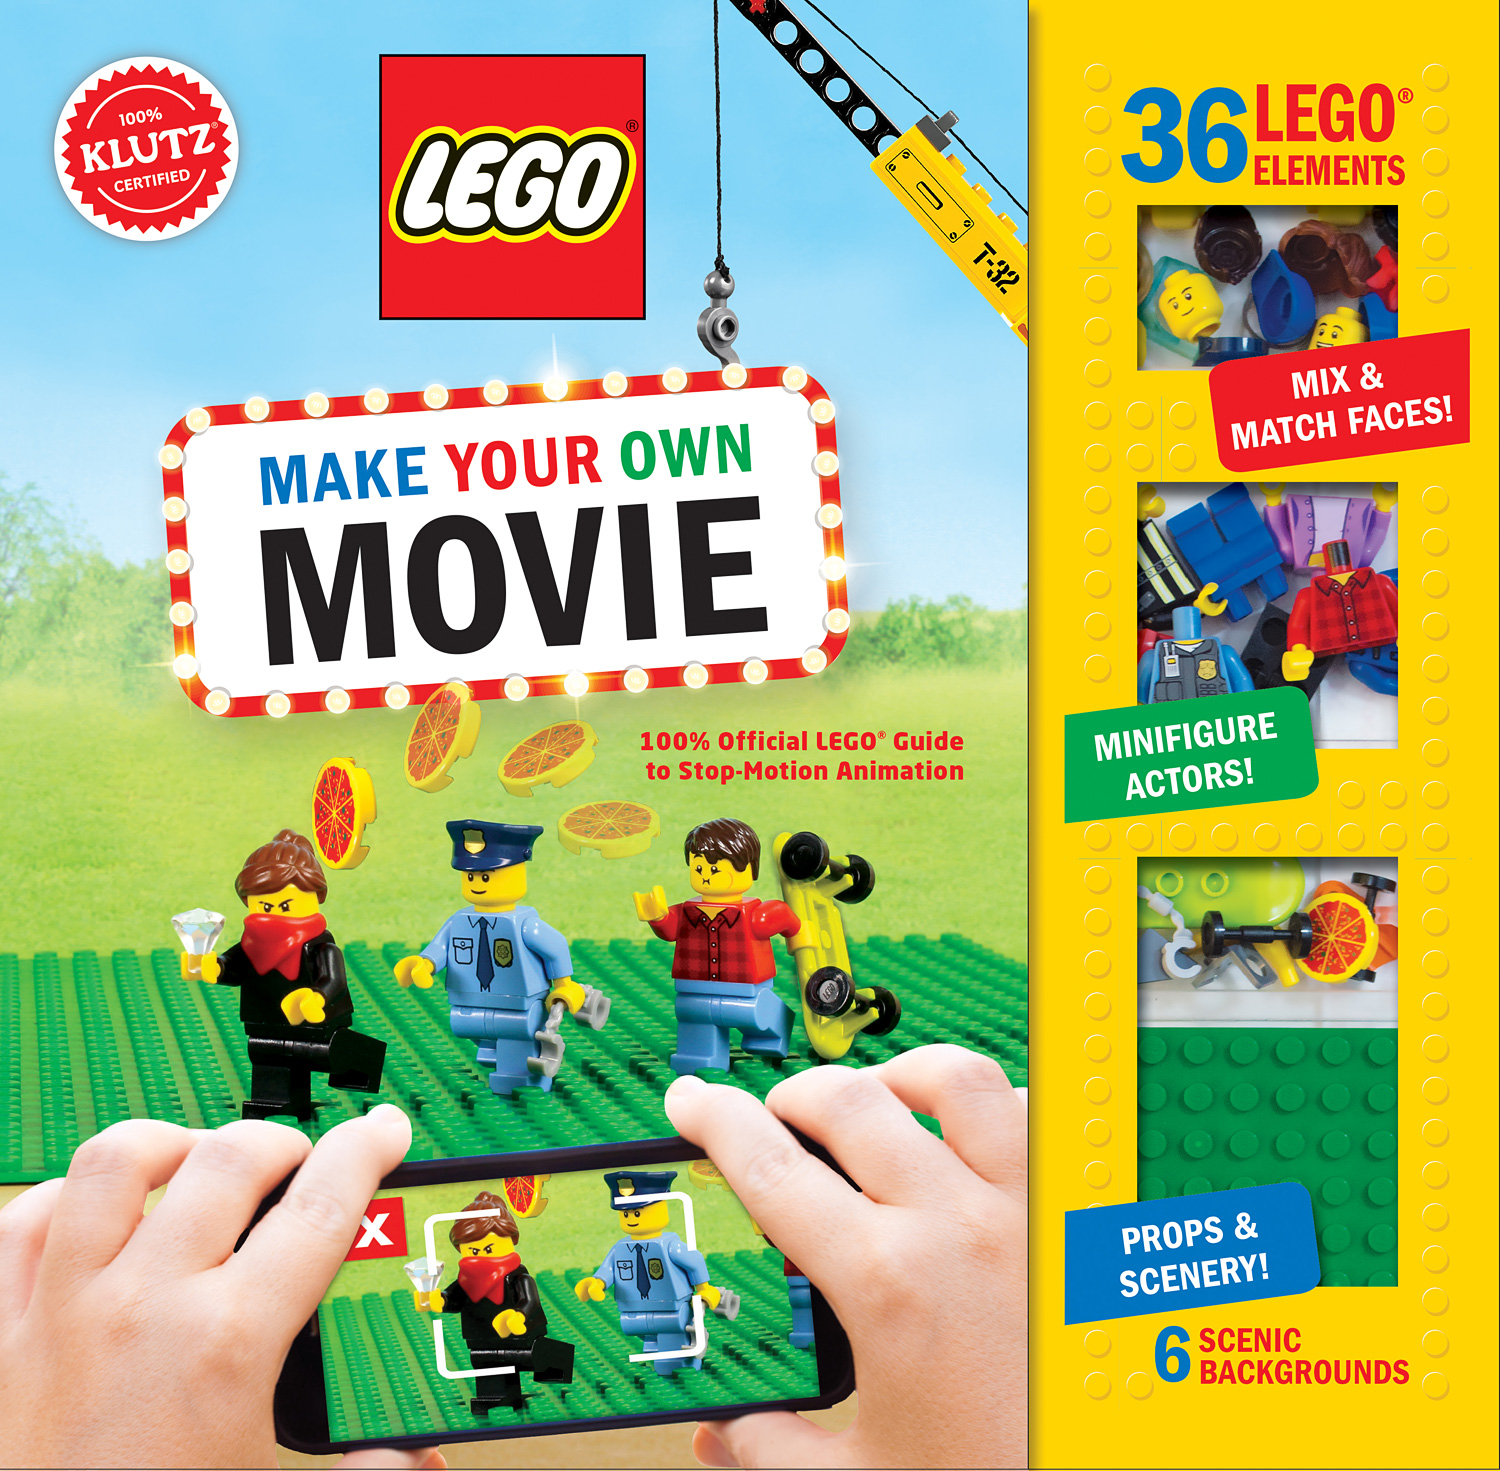 LEGO® MAKE YOUR OWN MOVIE